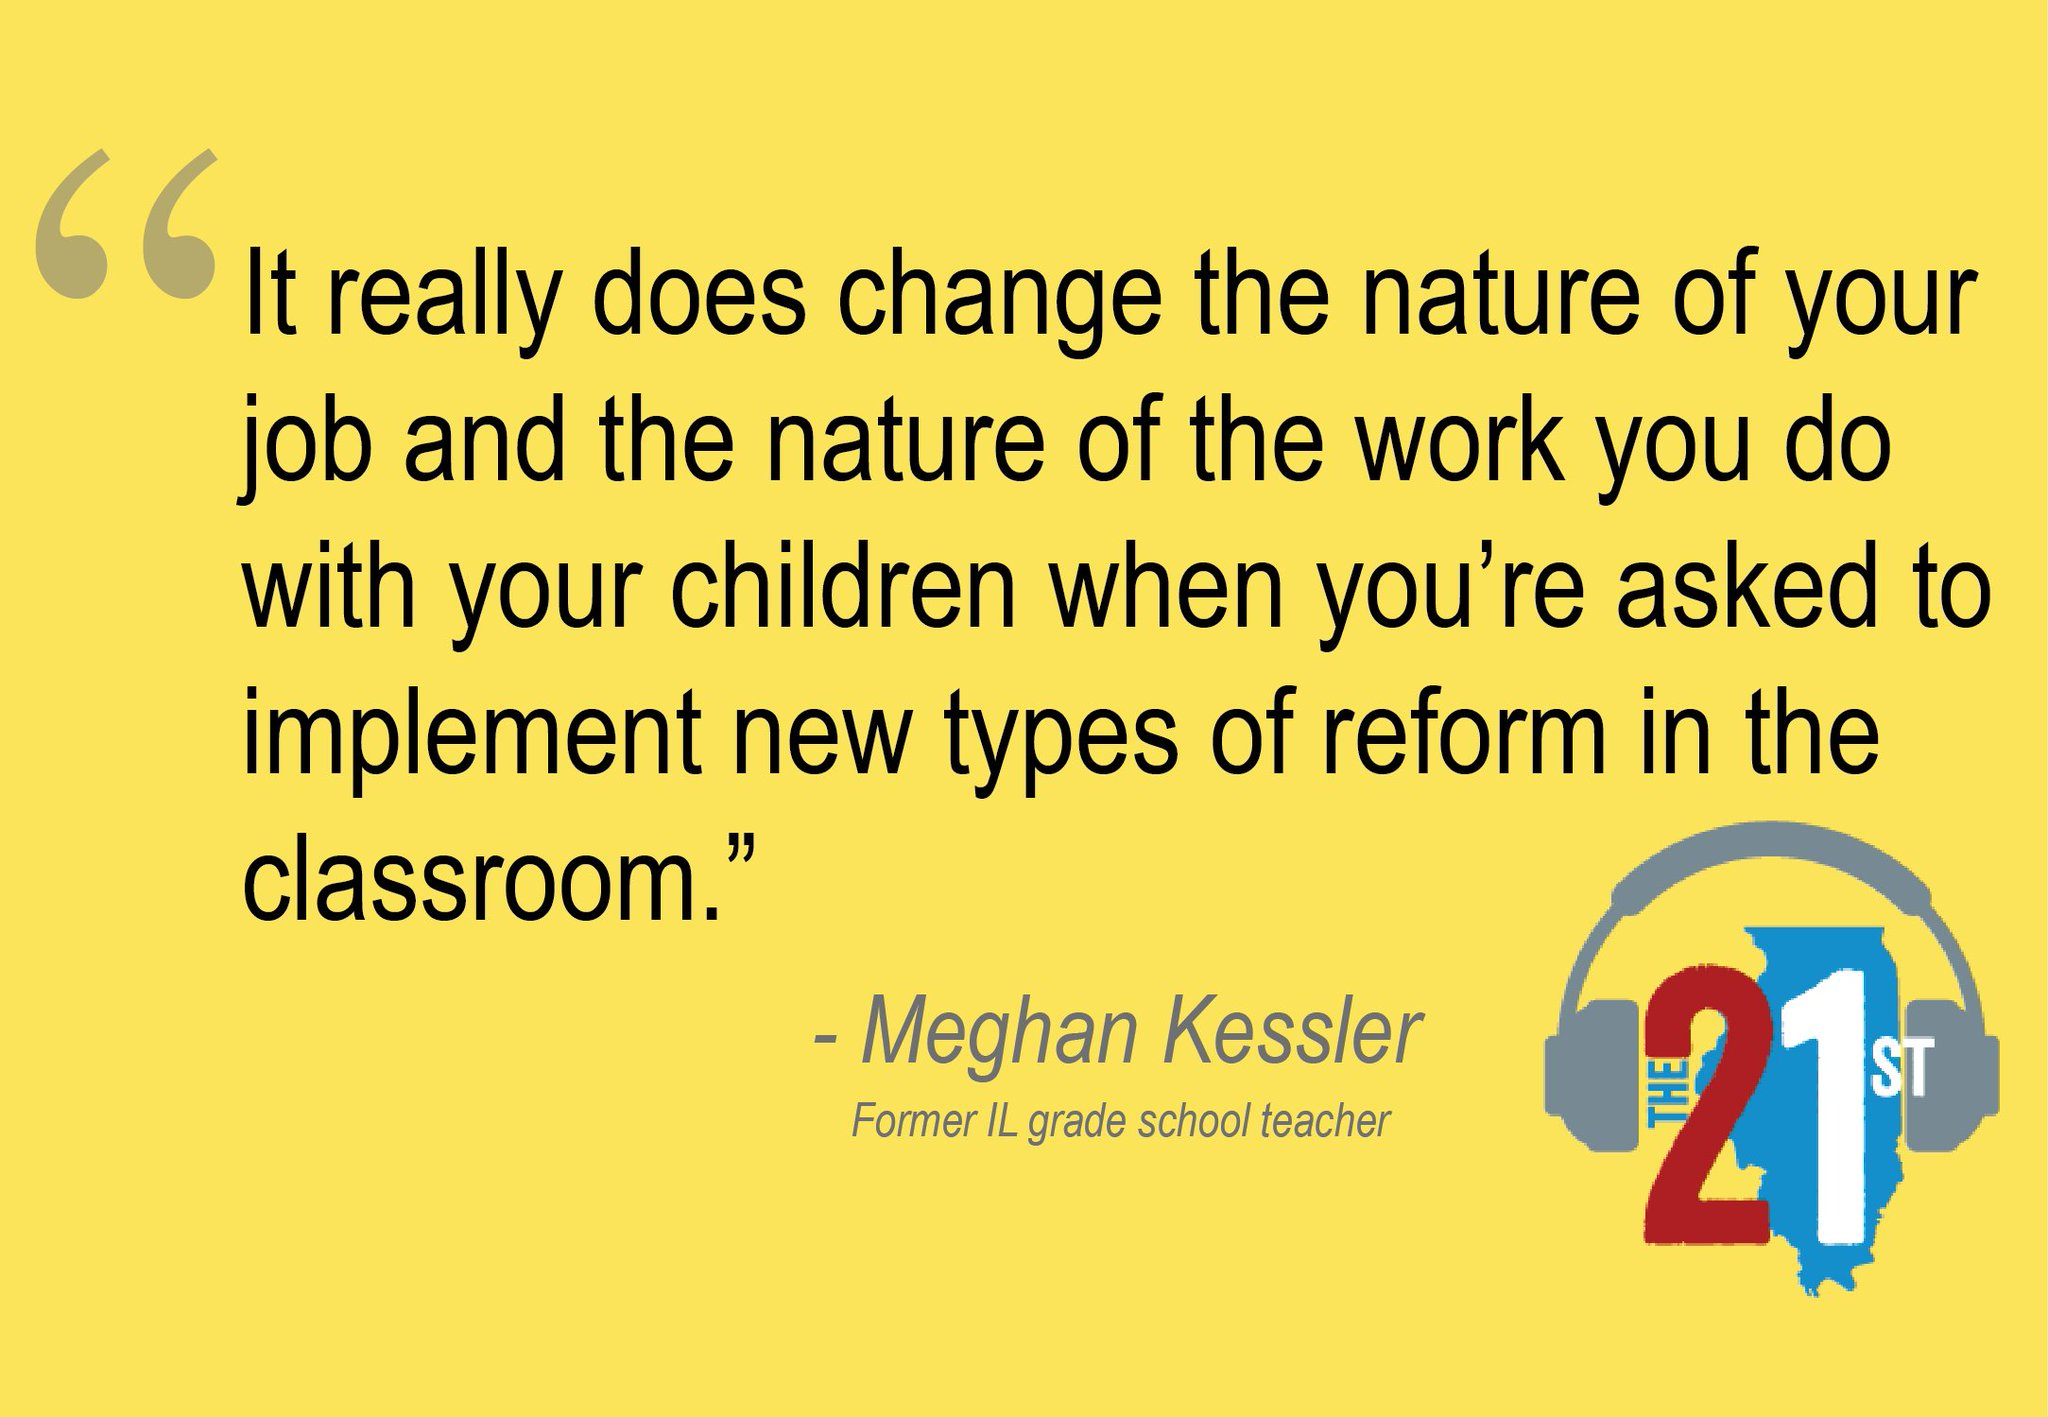 Former #IL teacher & current @edILLINOIS grad student Meghan Kessler on challenges teachers face in #K12 https://t.co/XTZ4oVdJxp